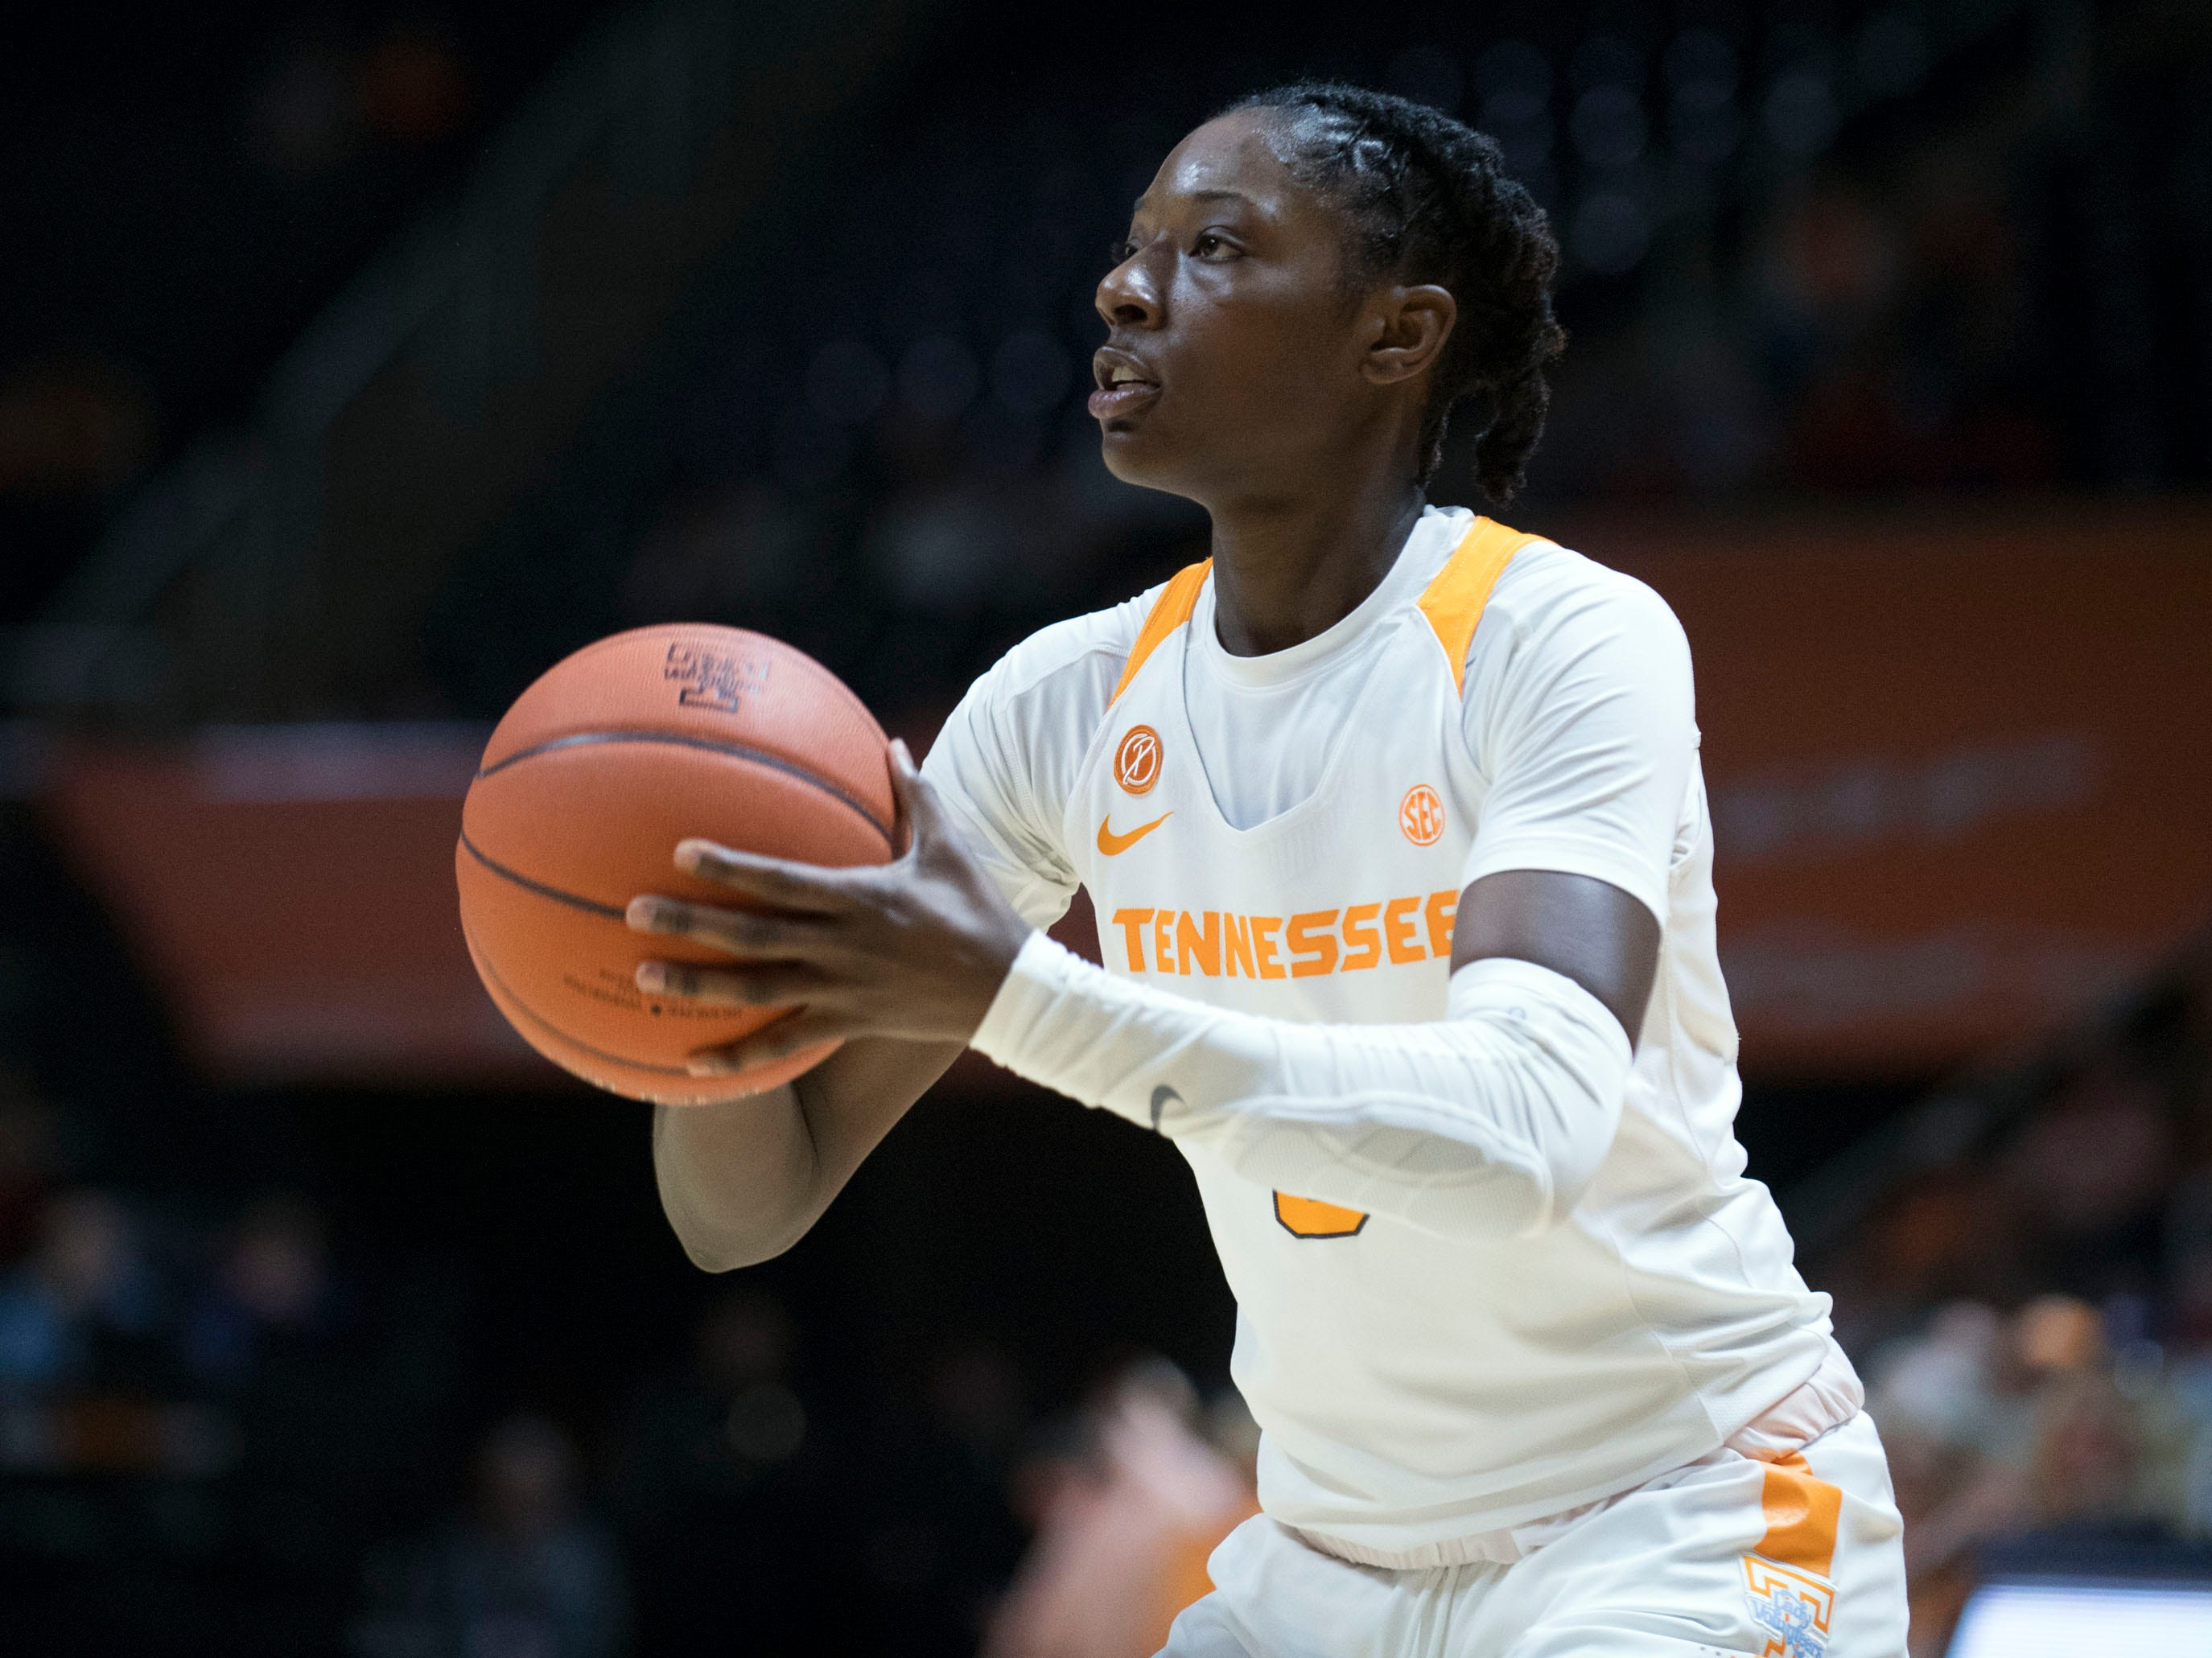 Tennessee's Rennia Davis (0) on the three-point attempt to give Tennessee their first lead over Stetson in the third quarter of the game at Thompson-Boling Arena on Wednesday, December 5, 2018.